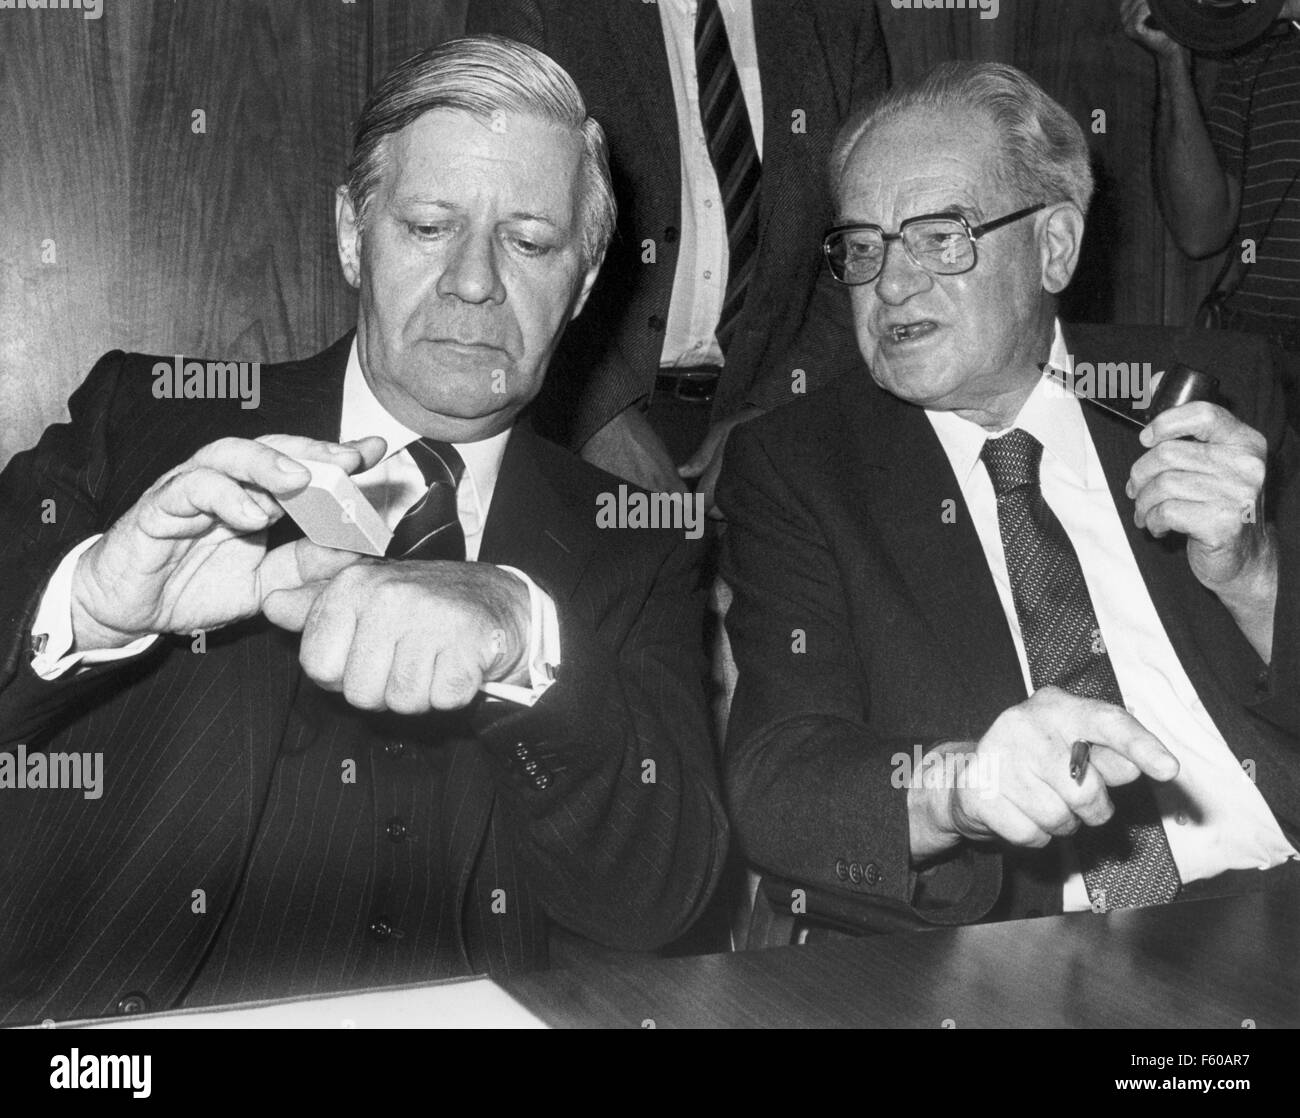 Chancellor Helmut Schmidt (L) in a conversation with faction leader Herbert Wehner (R) during the SPD party meeting. The SPD/FDP coalition was ended with the resignation of the four FDP ministers on 17 September 1982. Stock Photo